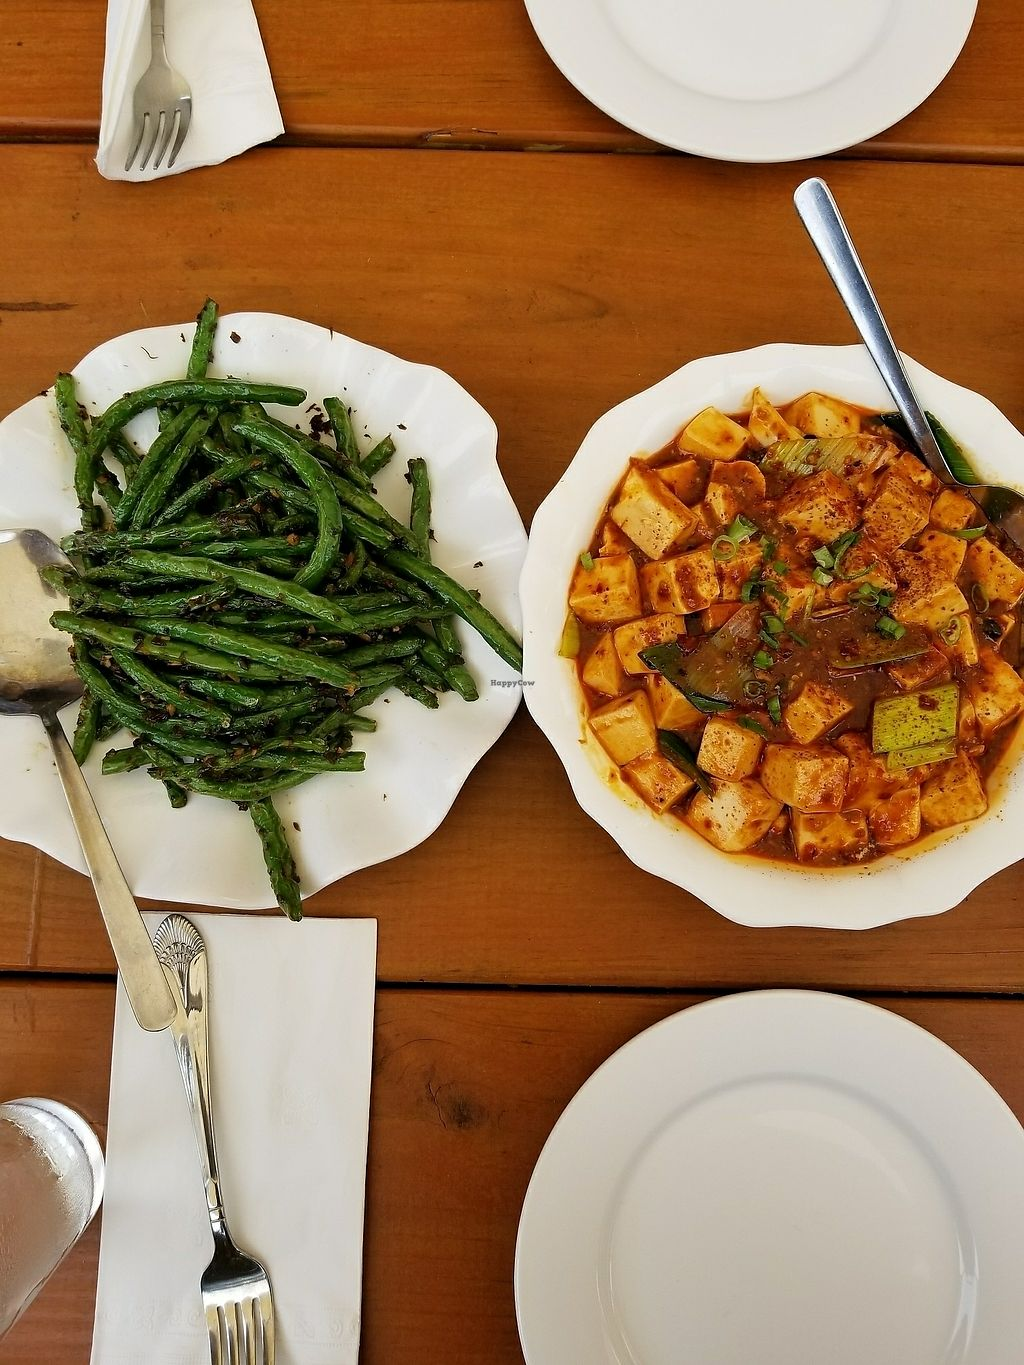 """Photo of Chef Tan  by <a href=""""/members/profile/tikhonova87"""">tikhonova87</a> <br/>napa tofu and beans from vegetarian section <br/> July 28, 2017  - <a href='/contact/abuse/image/93346/285960'>Report</a>"""